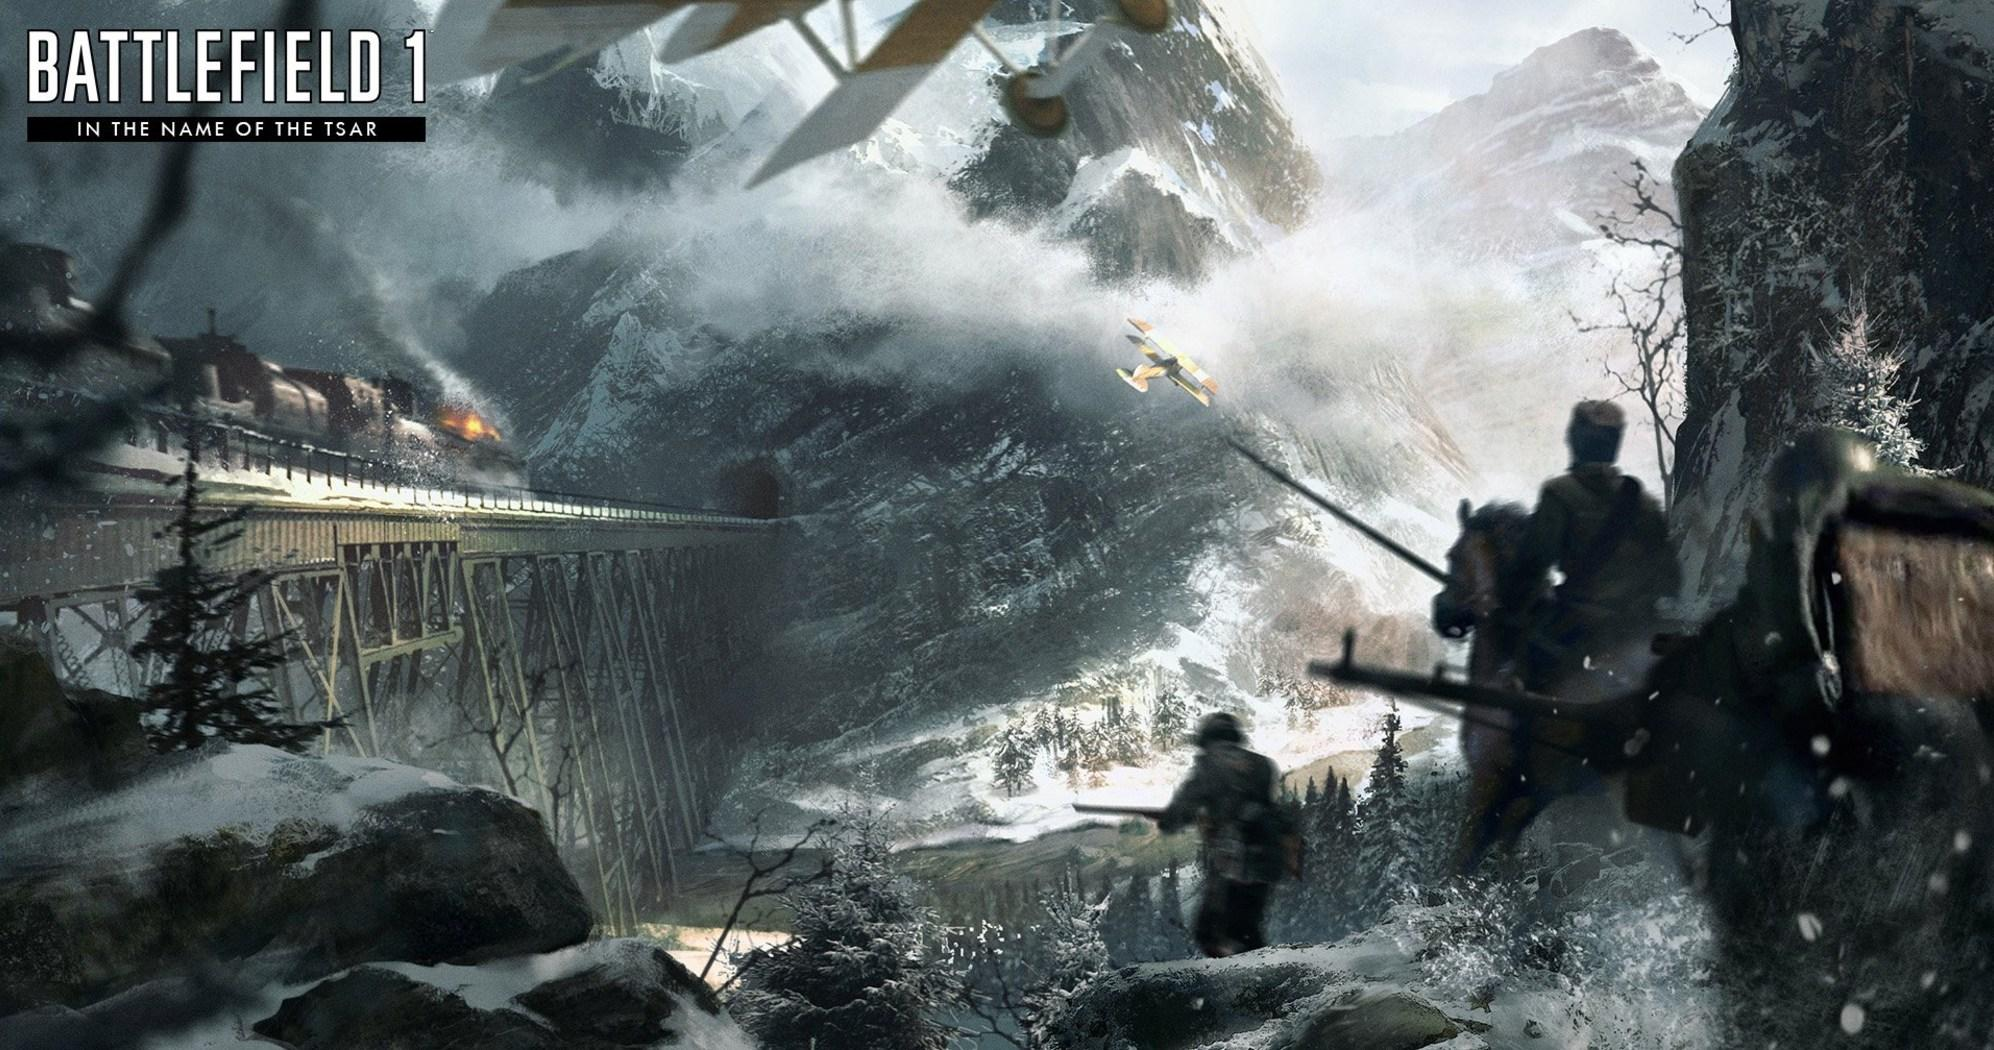 'Battlefield 1' In The Name Of The Tsar DLC